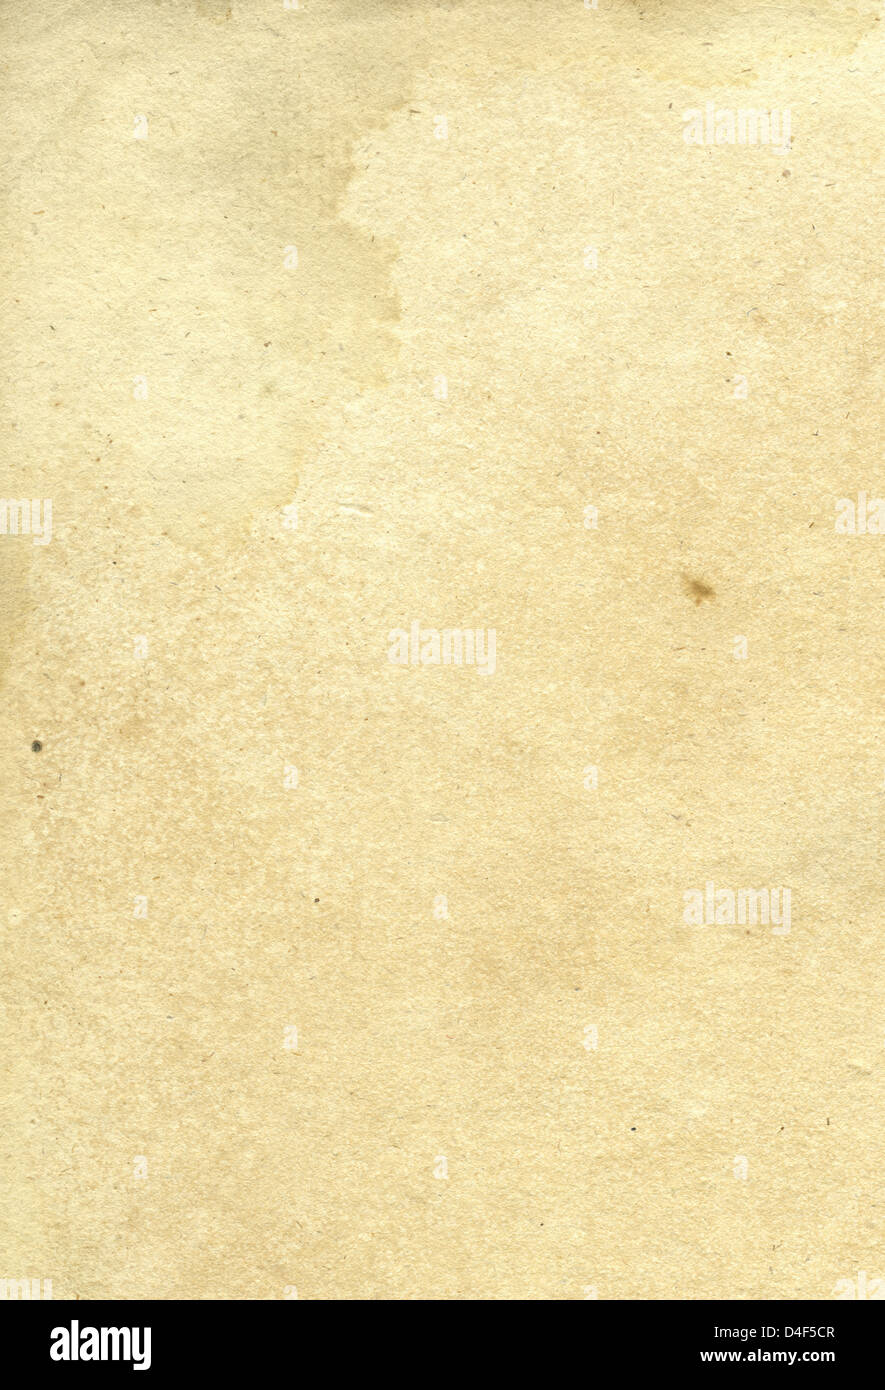 Old paper background. Yellow aged paper. - Stock Image